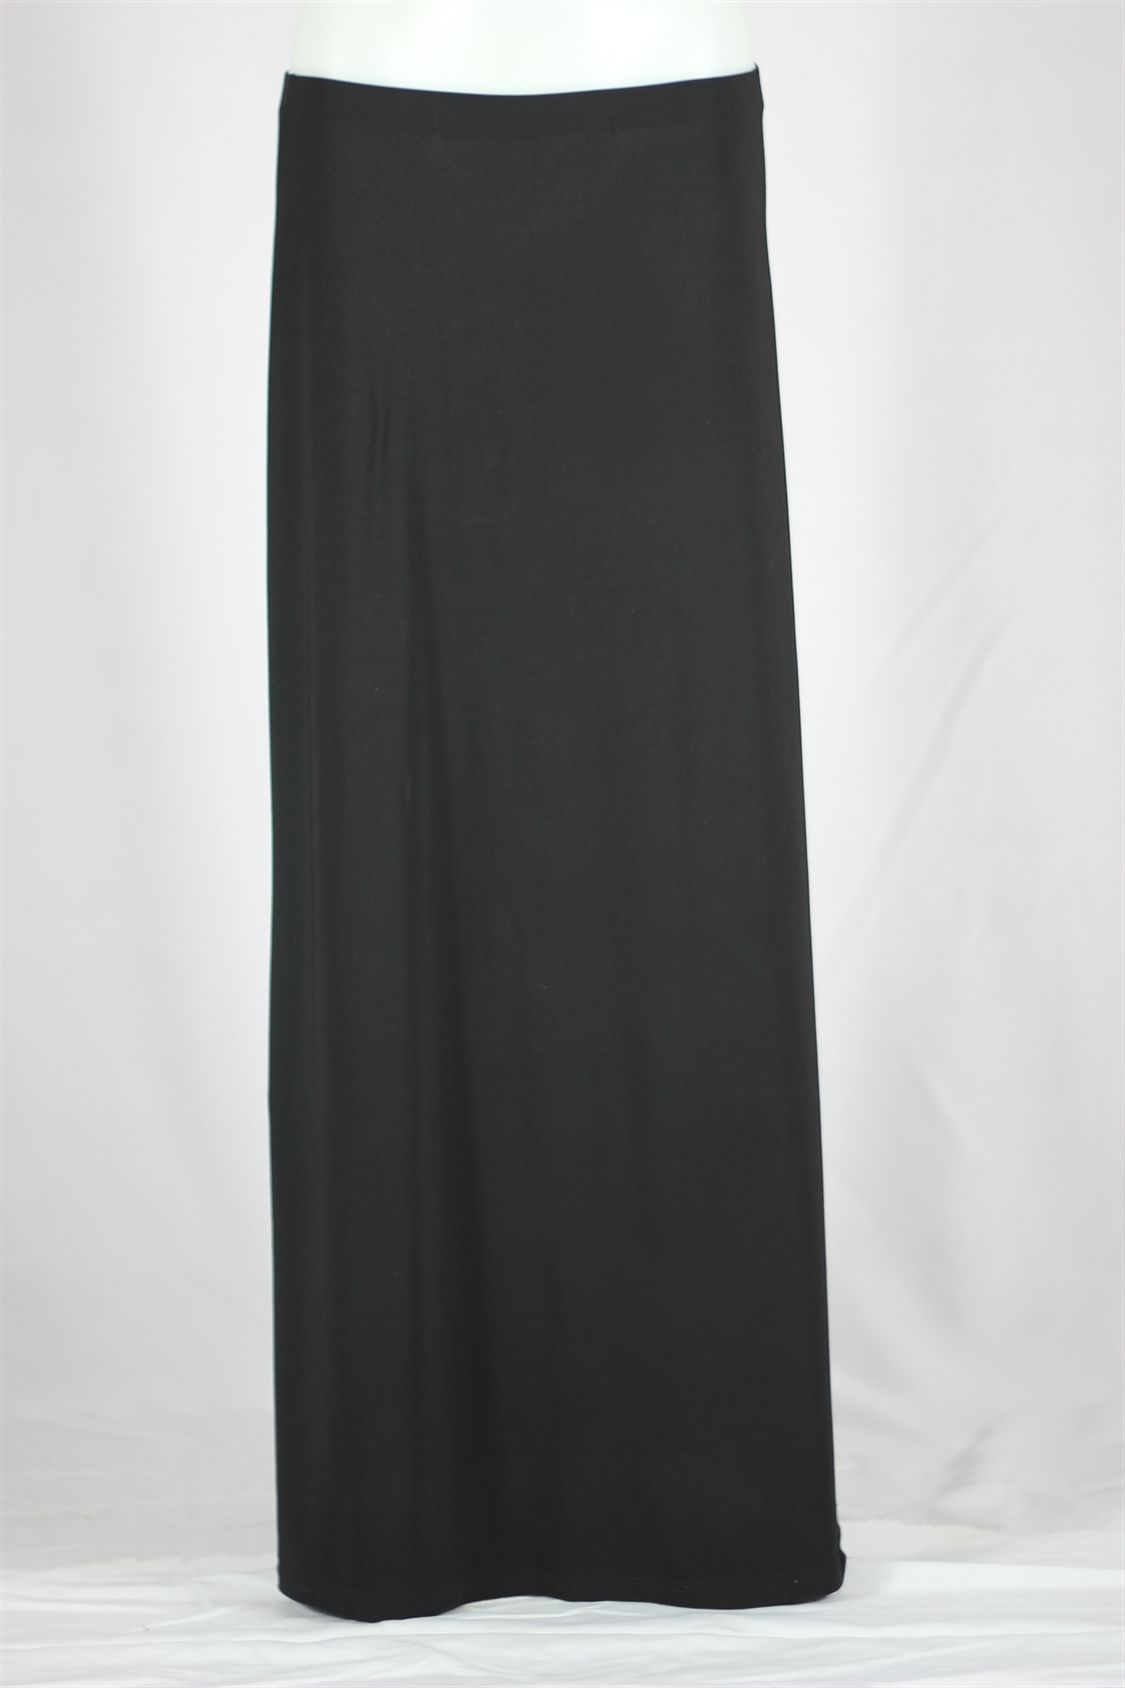 Skirt Long Black - Dress Ala